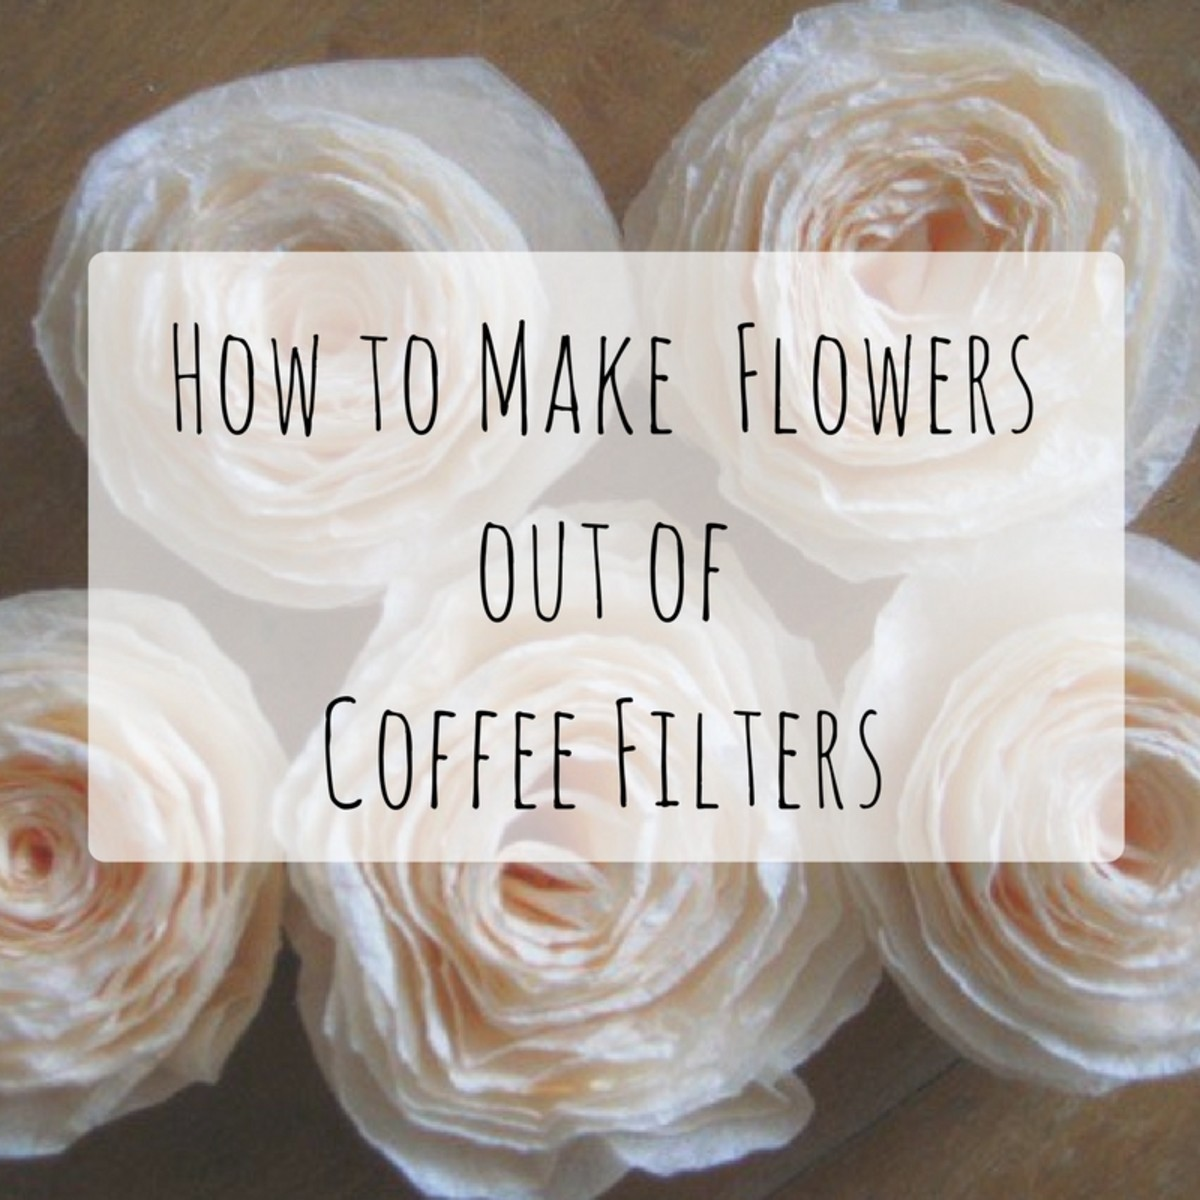 How to make flowers from coffee filters 8 patterns and tips how to make flowers from coffee filters 8 patterns and tips feltmagnet mightylinksfo